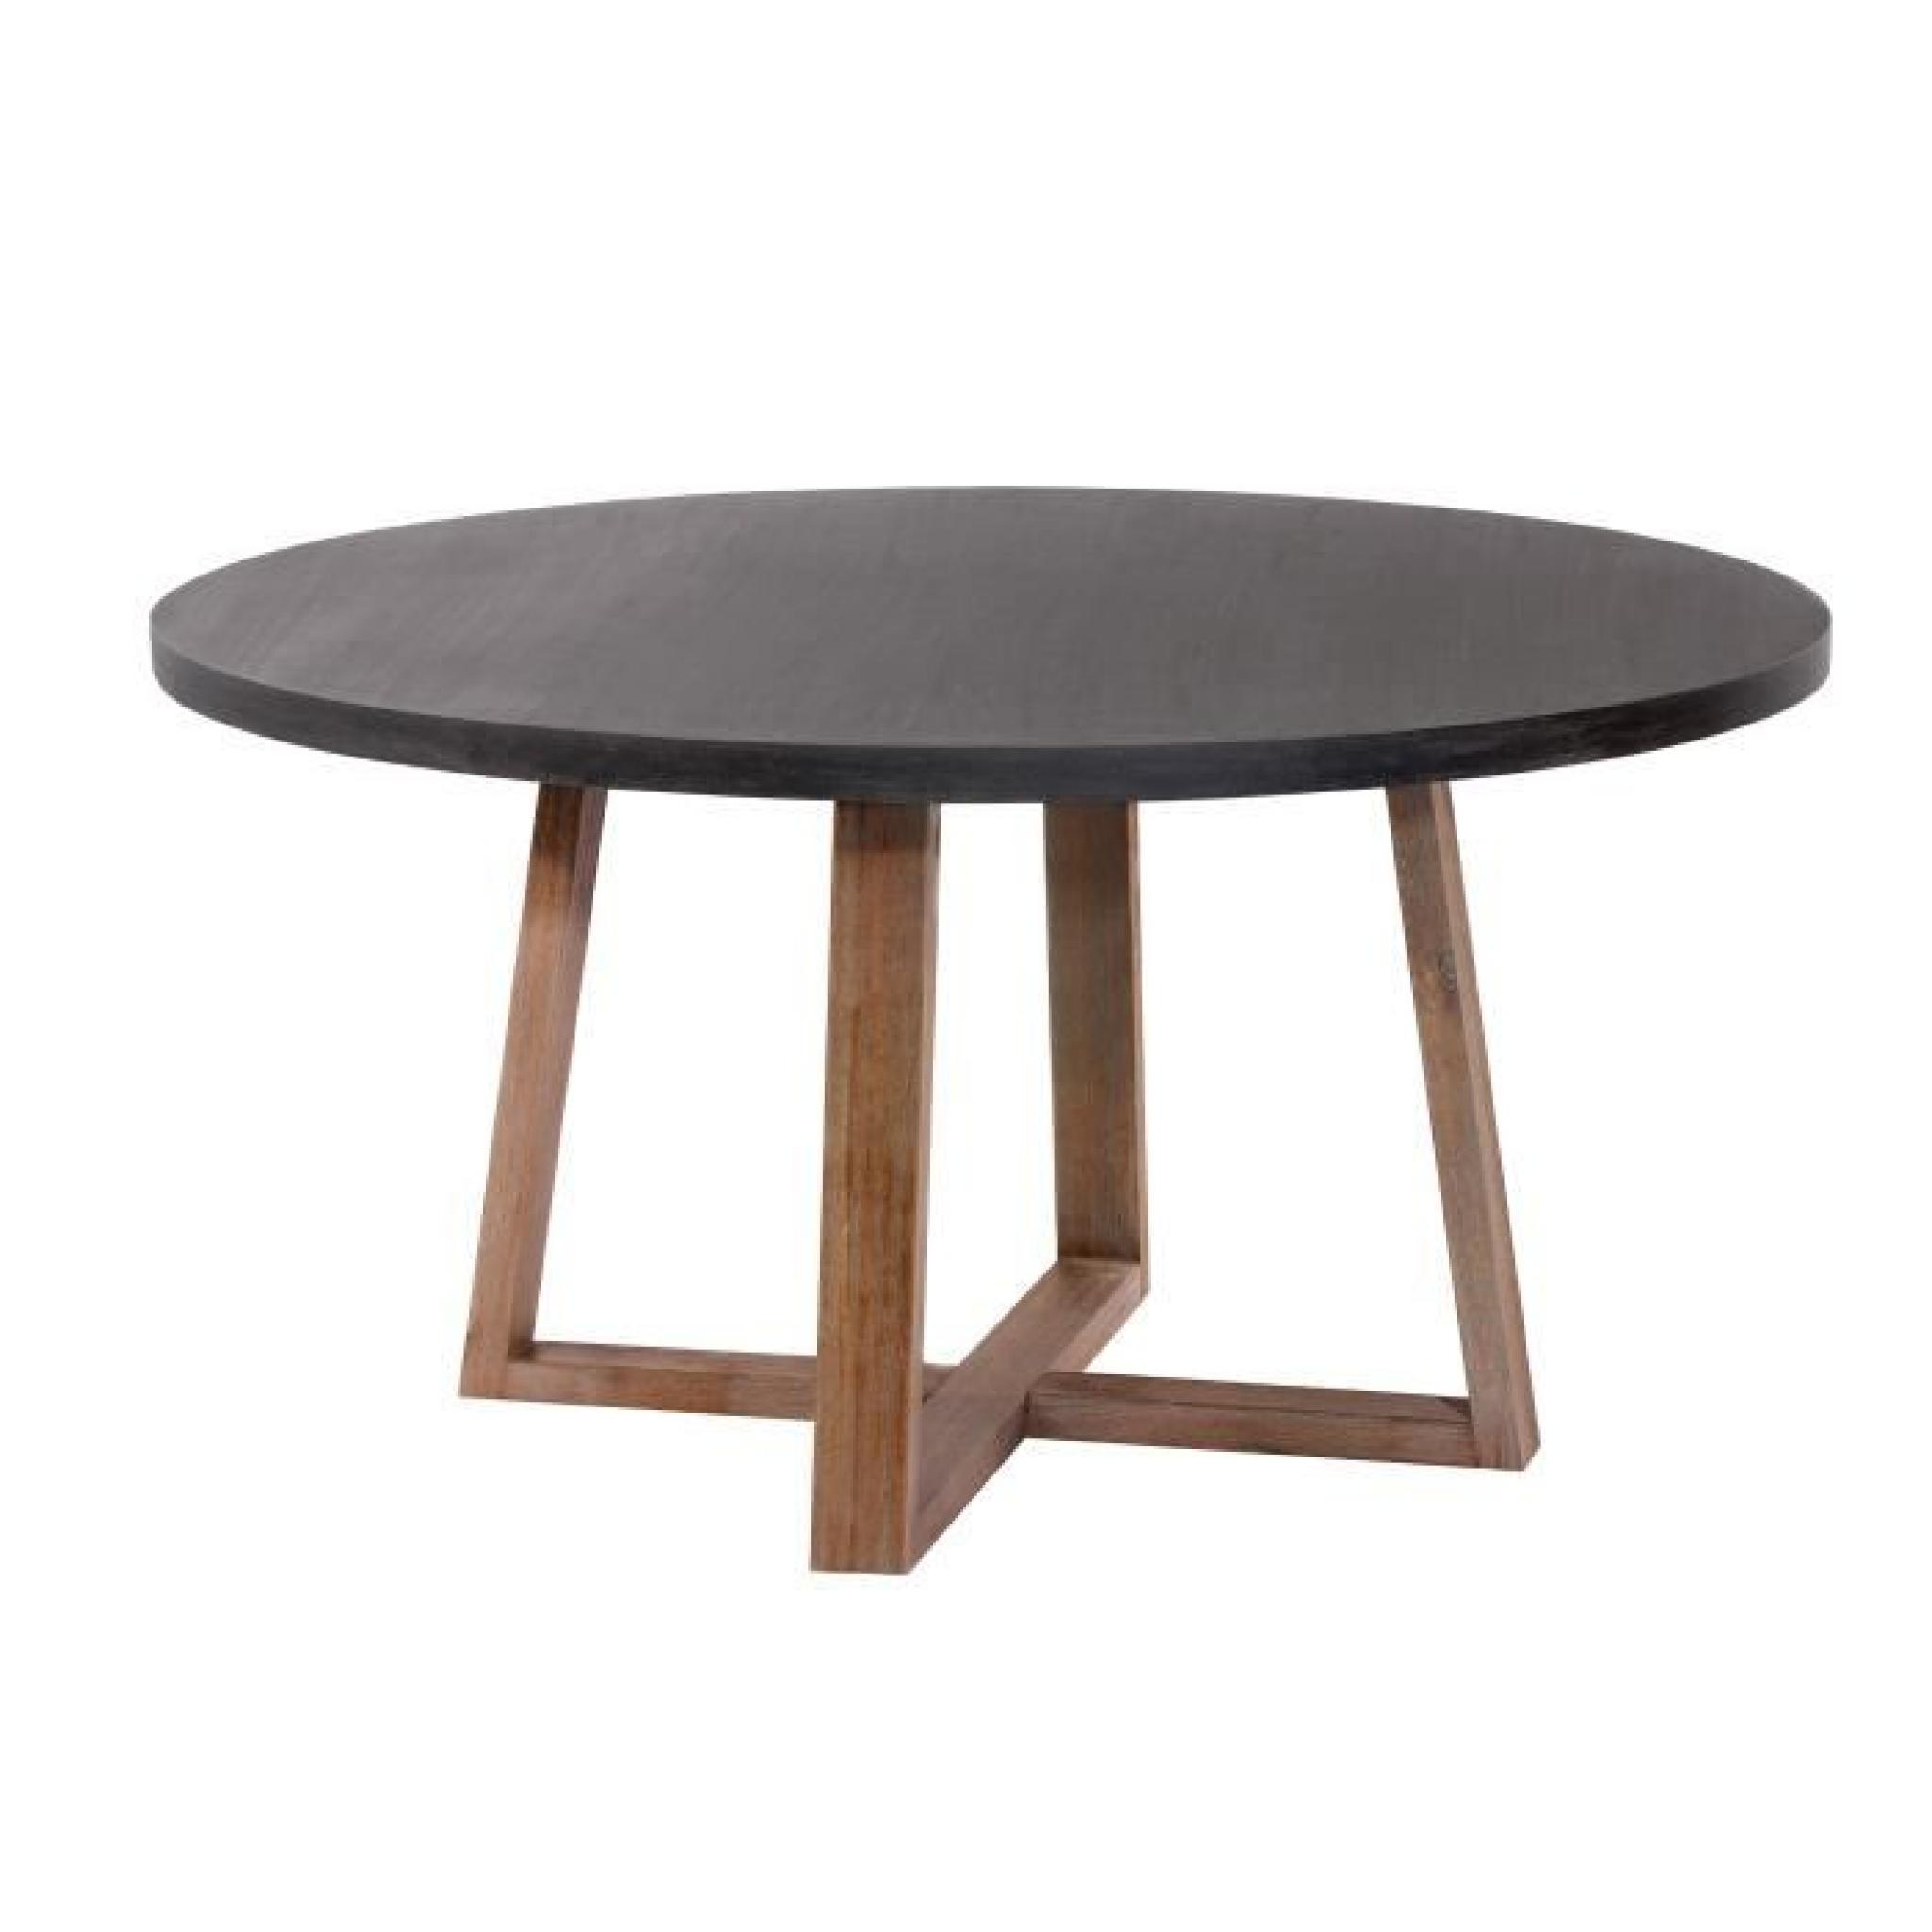 Table ronde tambora 140 cm achat vente table salle a for Grande table a manger ronde